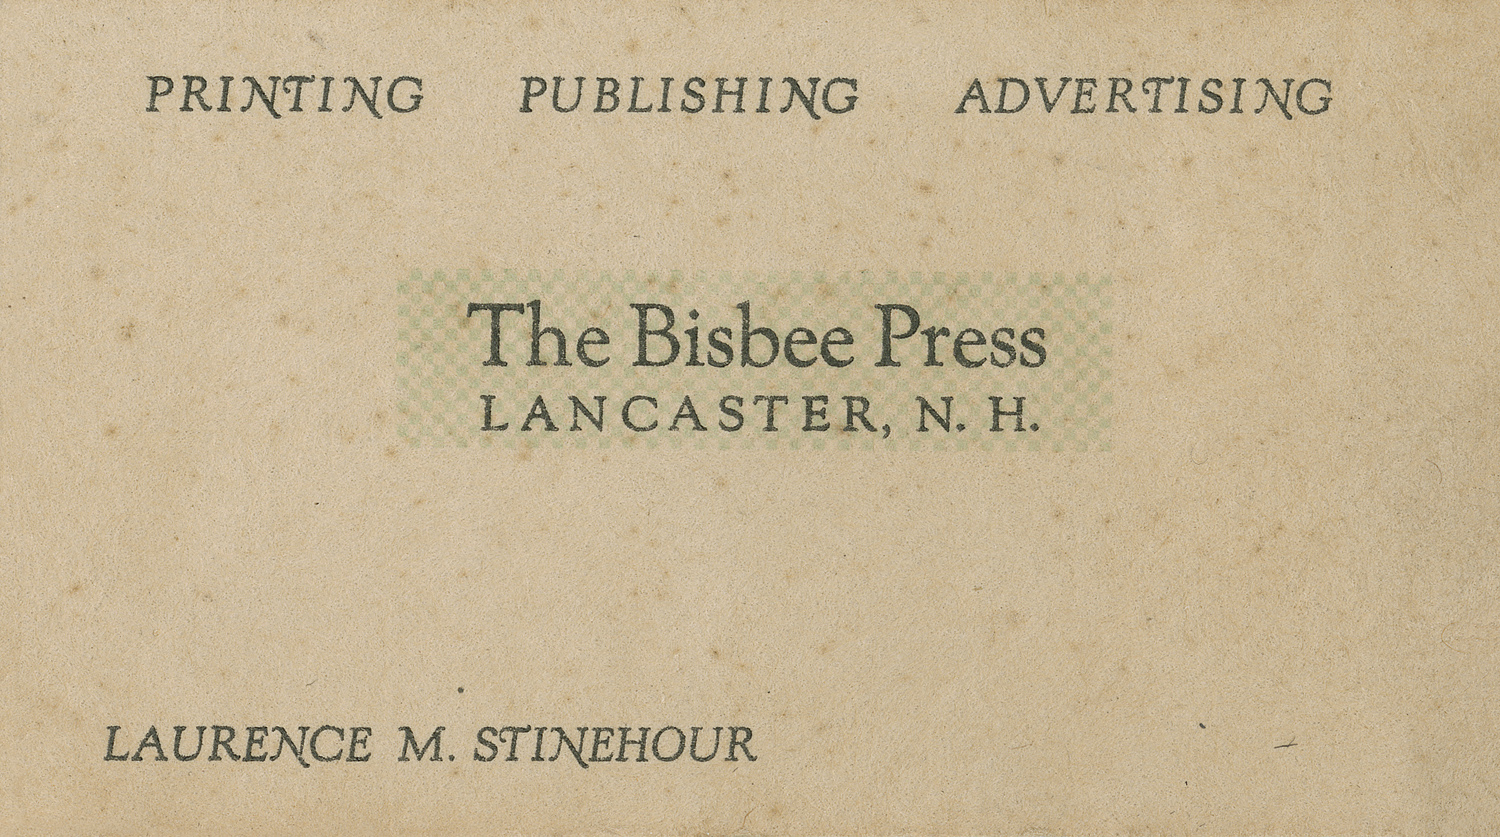 Business Card, 1950